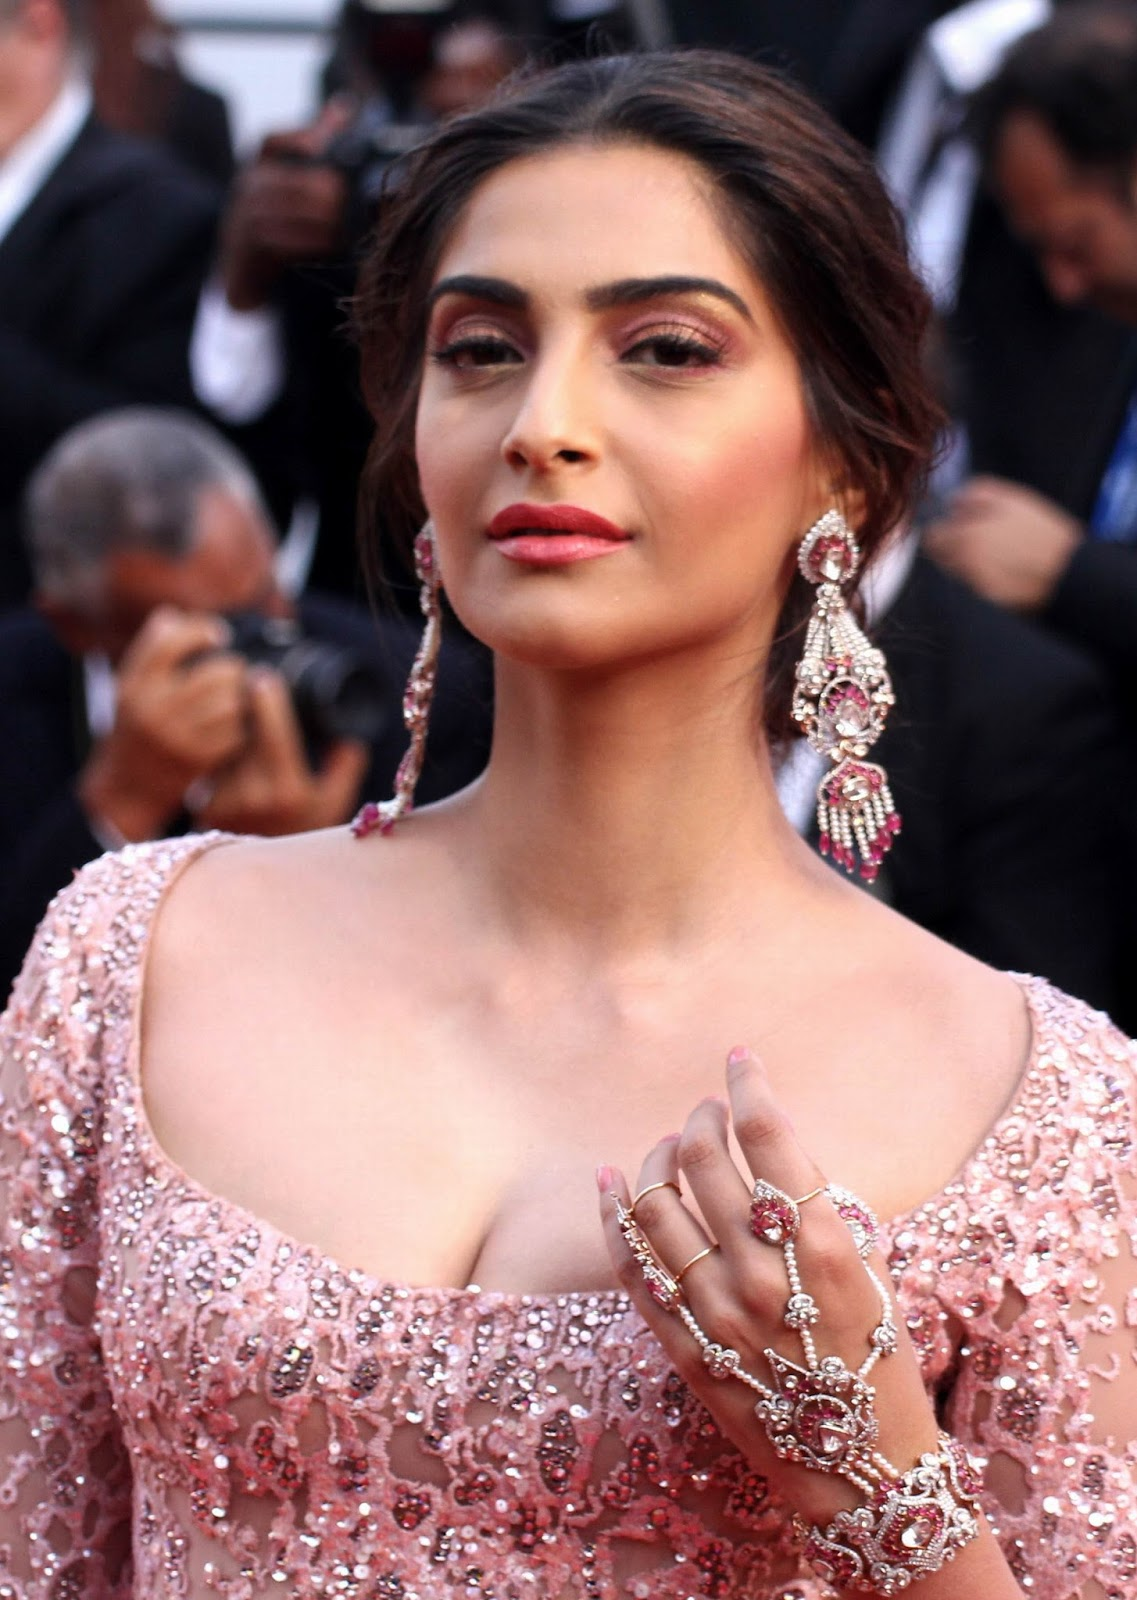 Sonam Kapoor Cannes Film Festival 2017 Photo Collection -4117